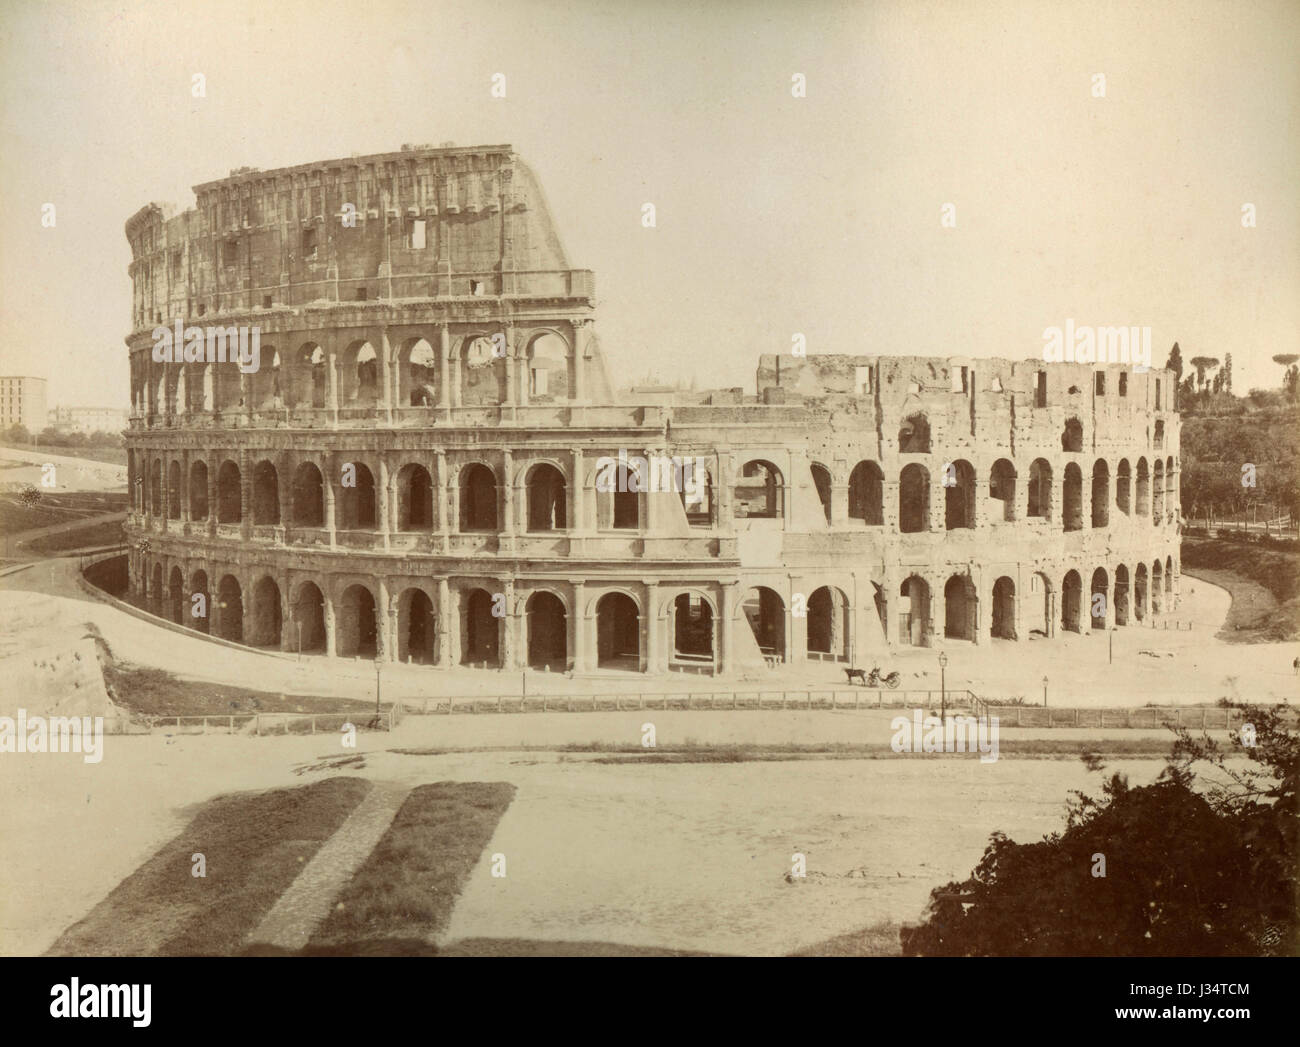 Flavian Amphitheater, aka Colosseum, Rome, Italy - Stock Image